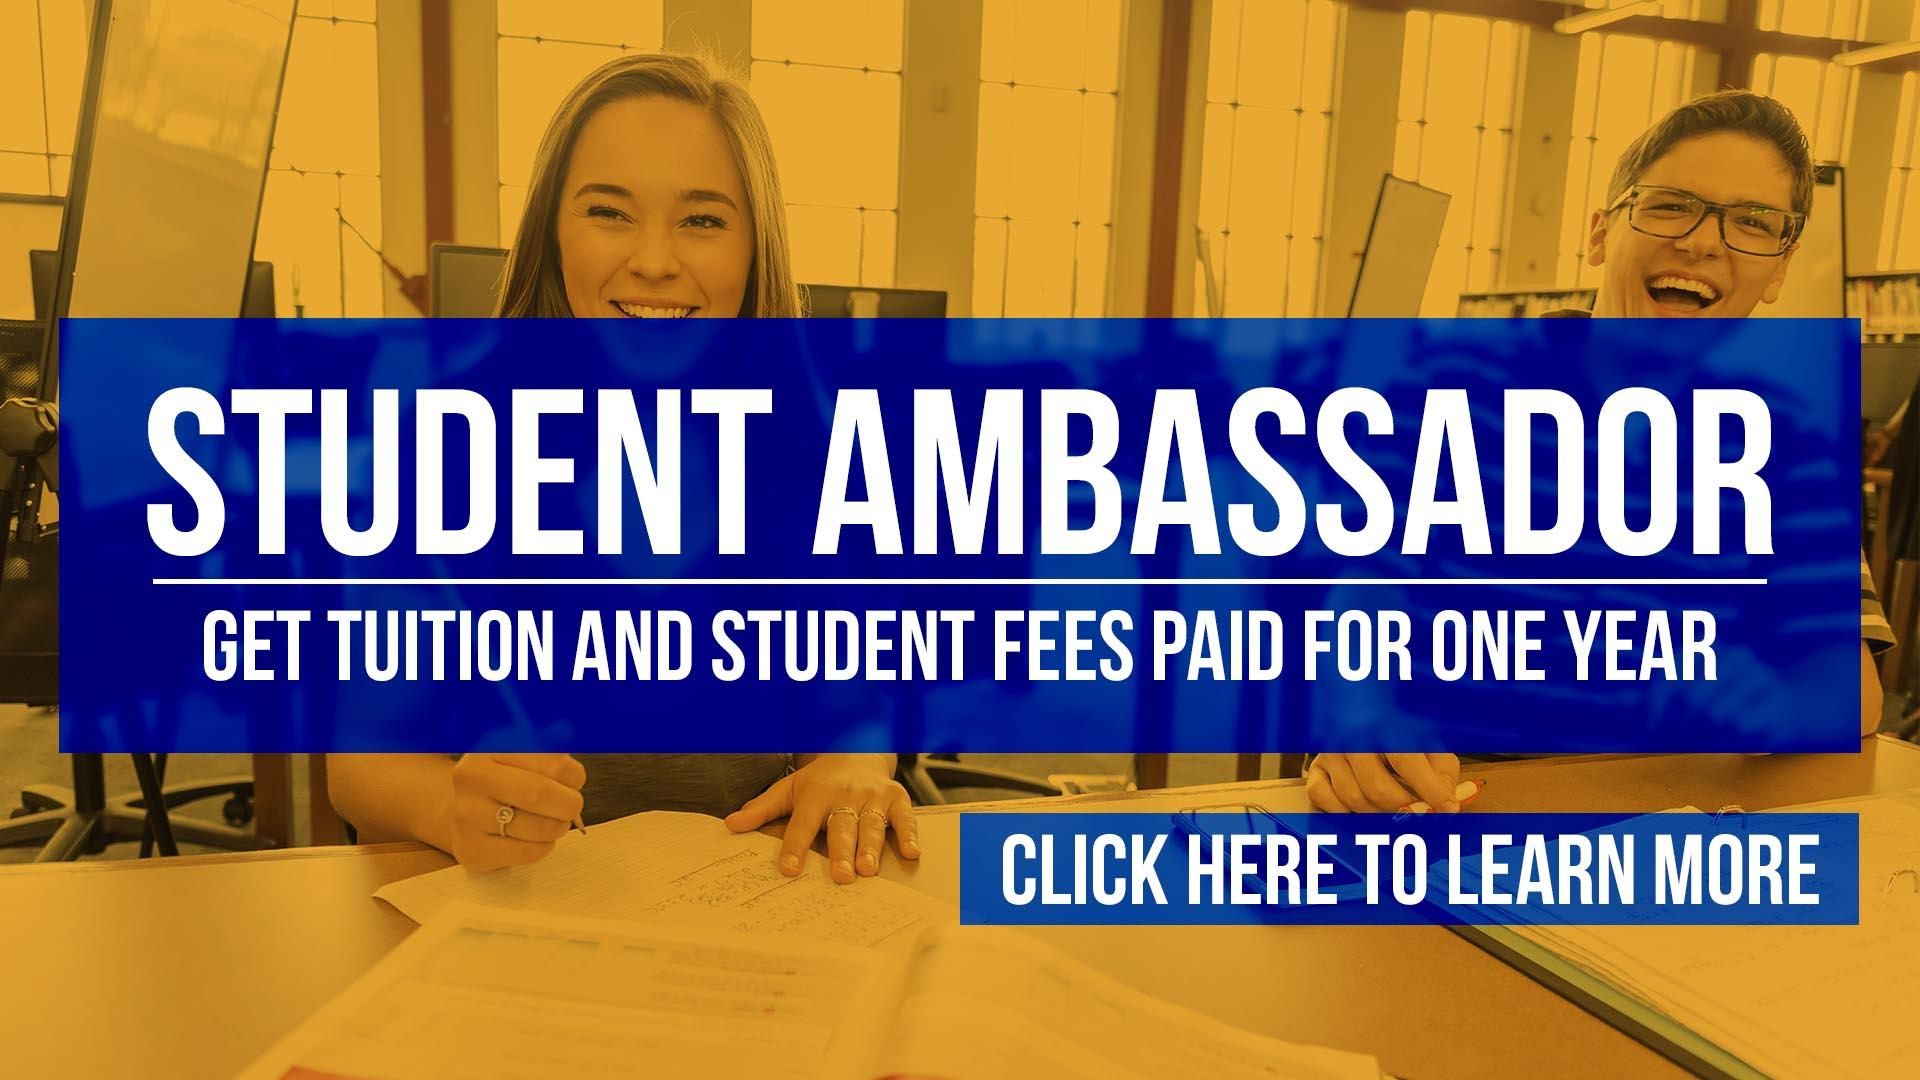 Student Ambassador Program - Get your tuition and student fees paid for one year.  Click here to learn more.